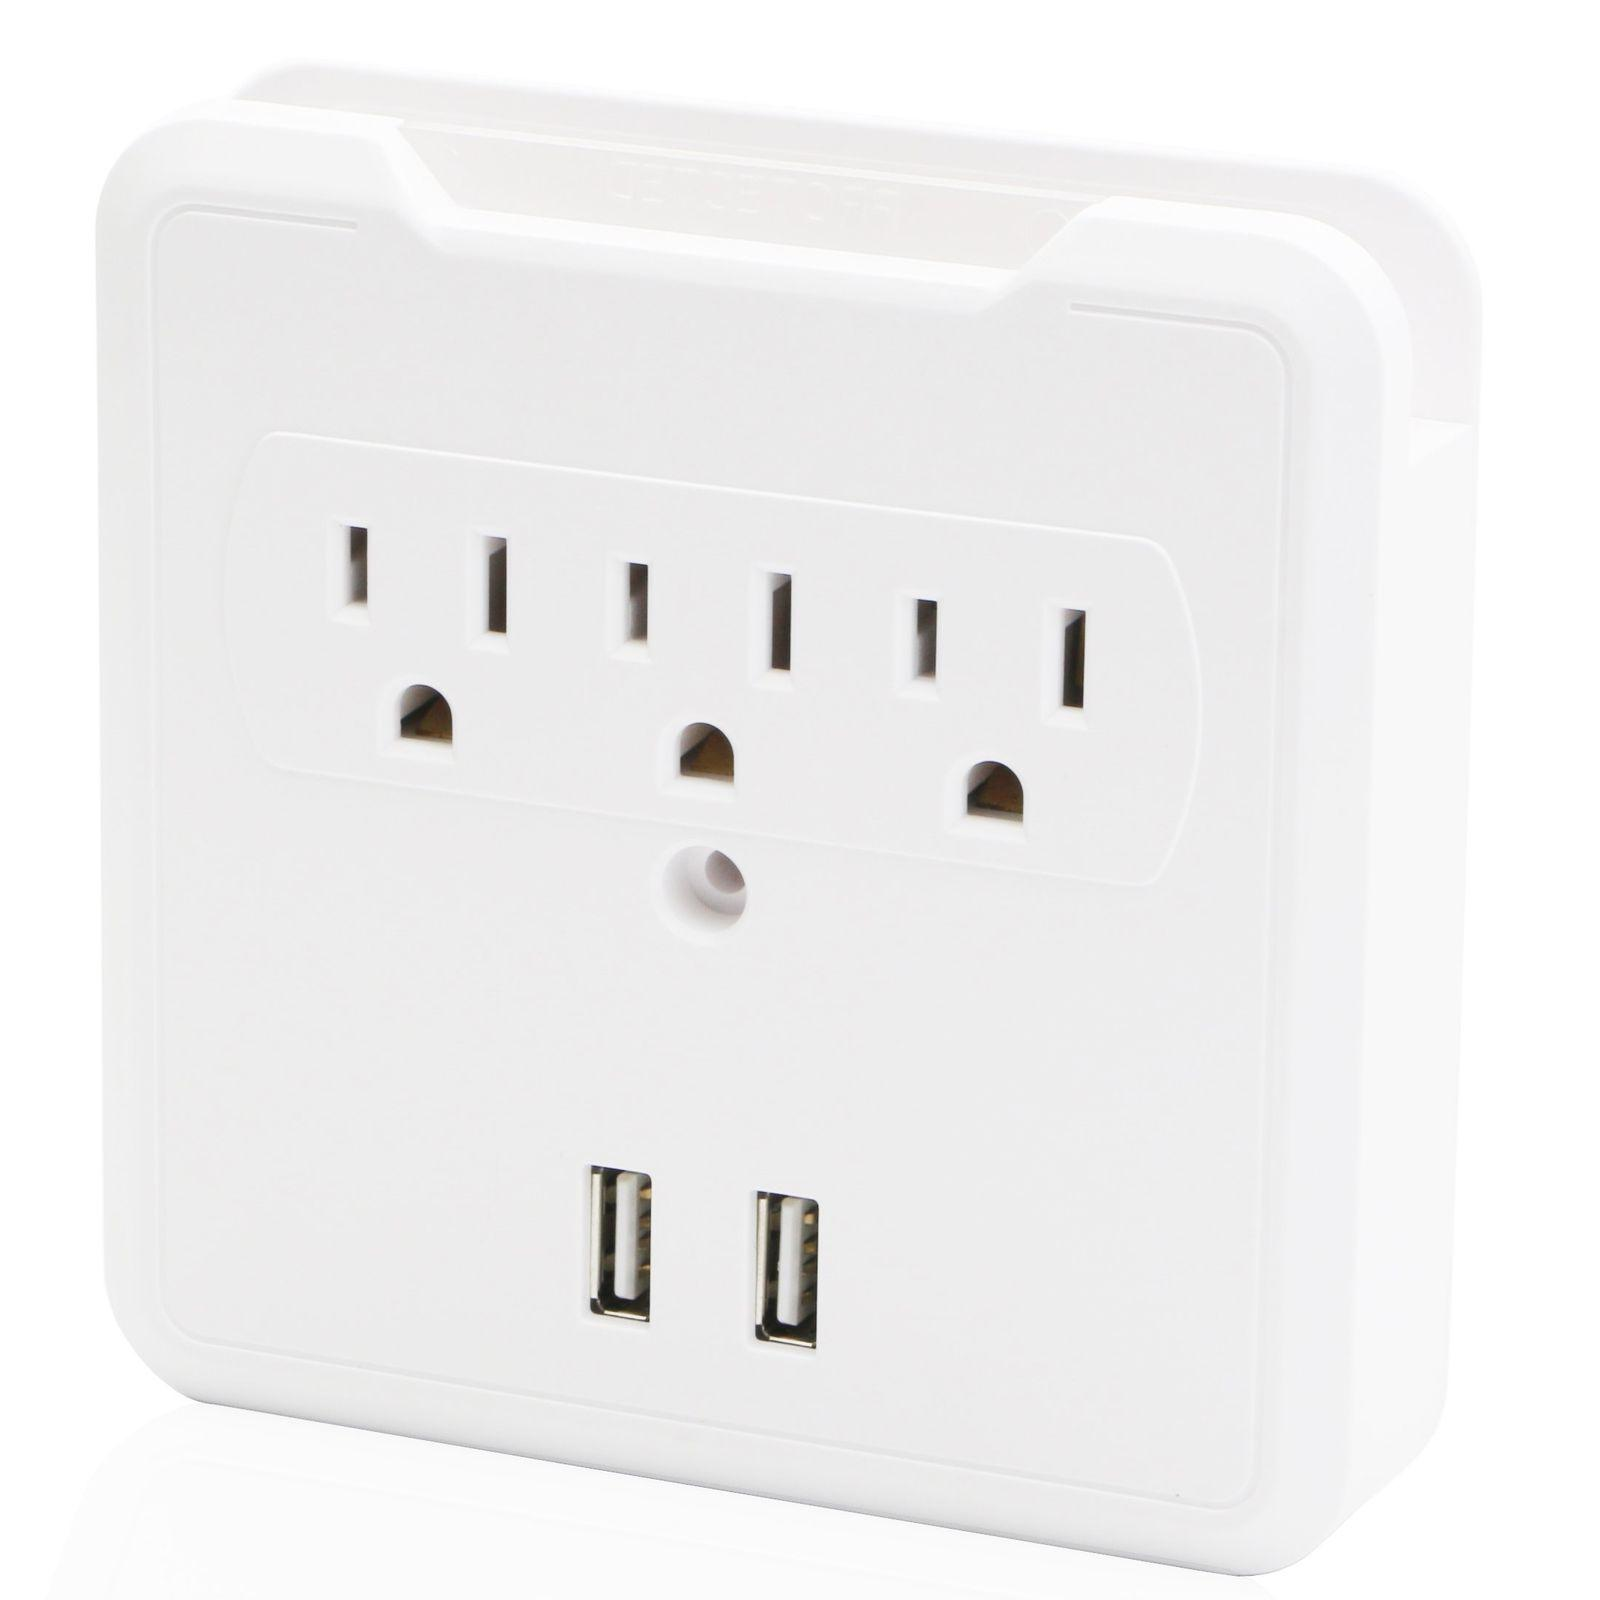 USB Outlet Plug Tap Electrical Surge